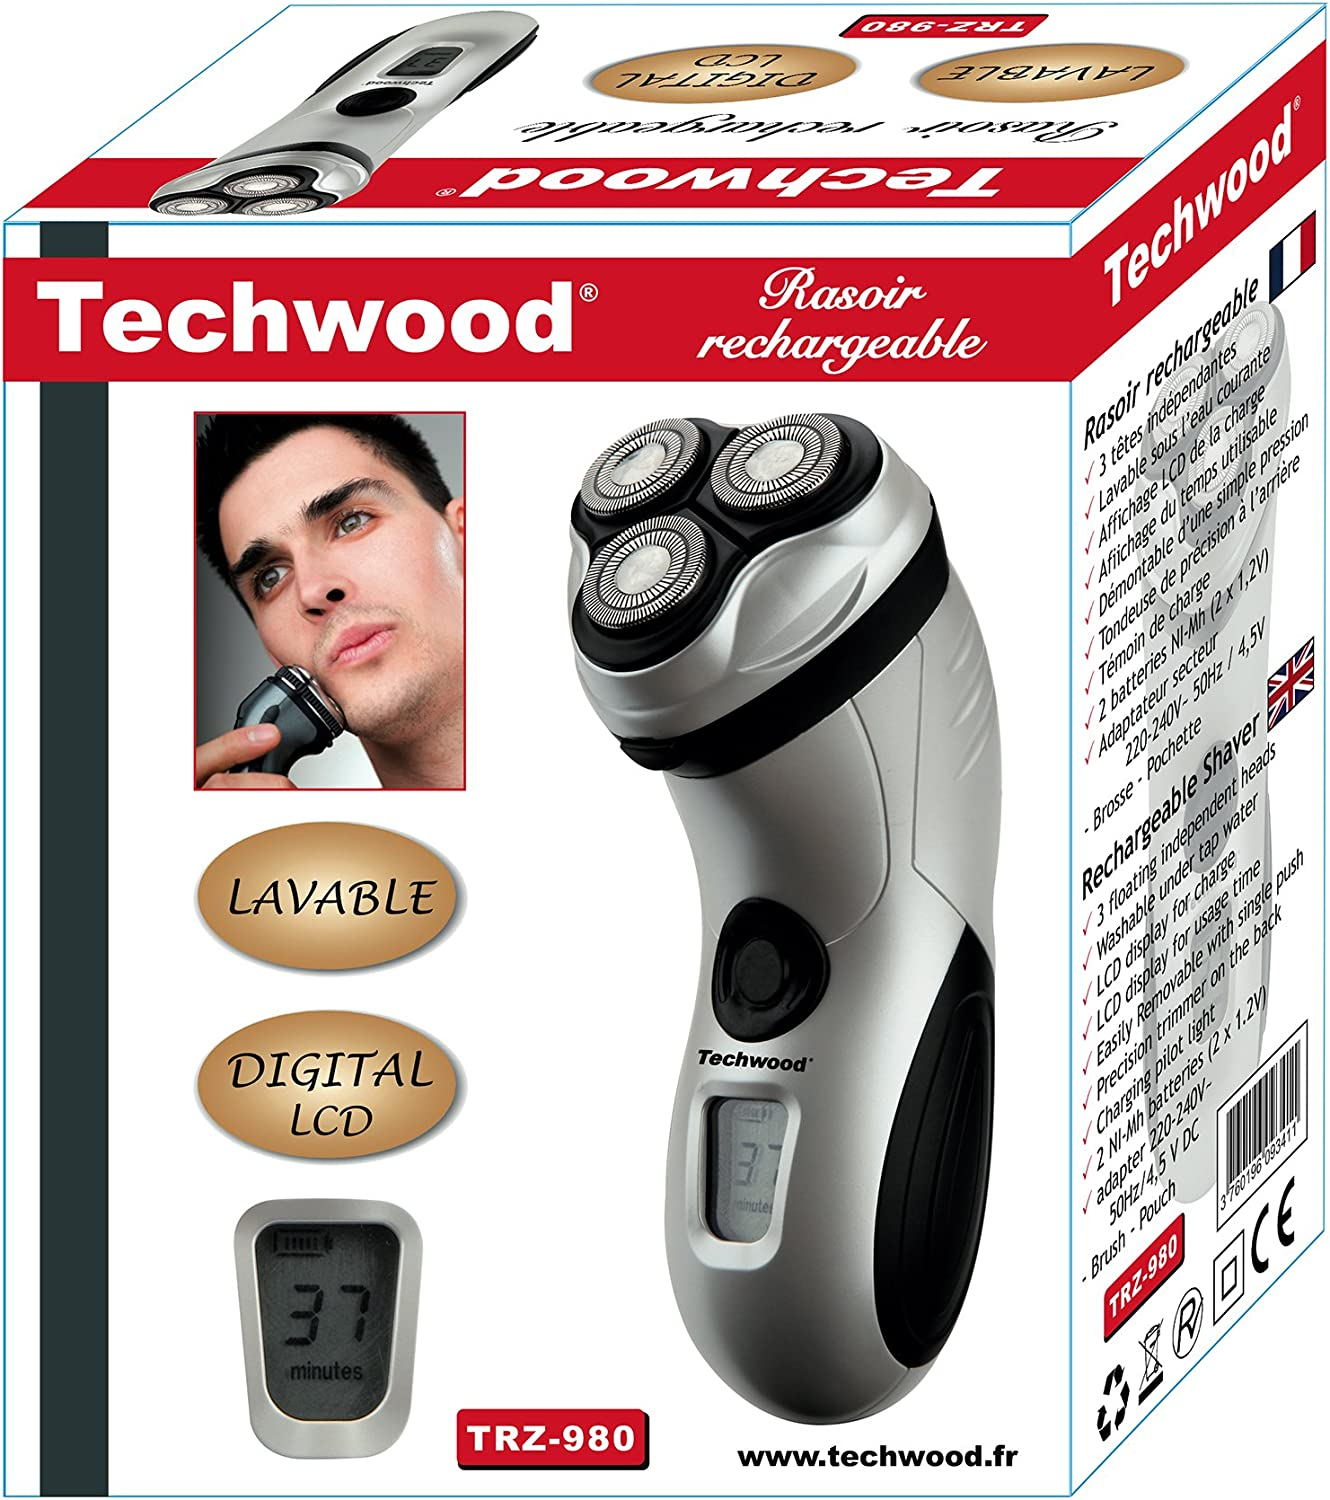 Techwood TRZ-980 - Afeitadora recargable: Amazon.es: Salud y ...